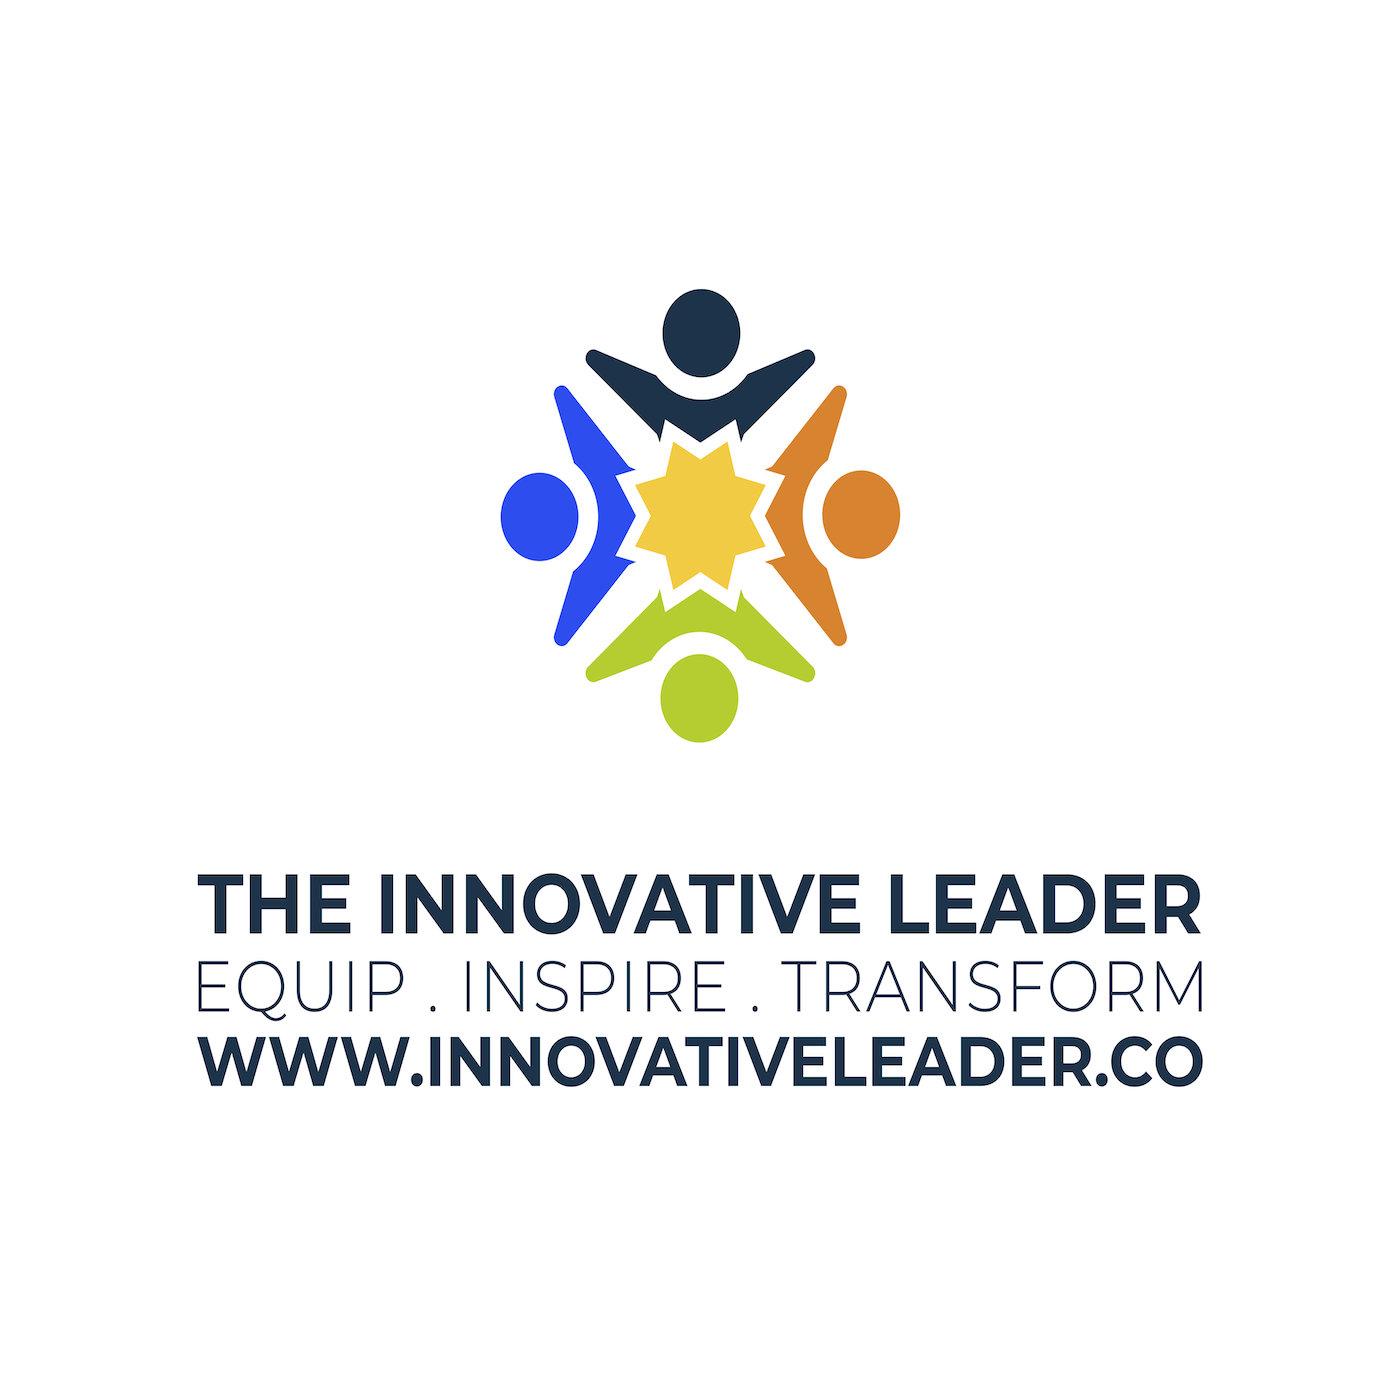 2021 Possibilities: Things for Leaders to Consider